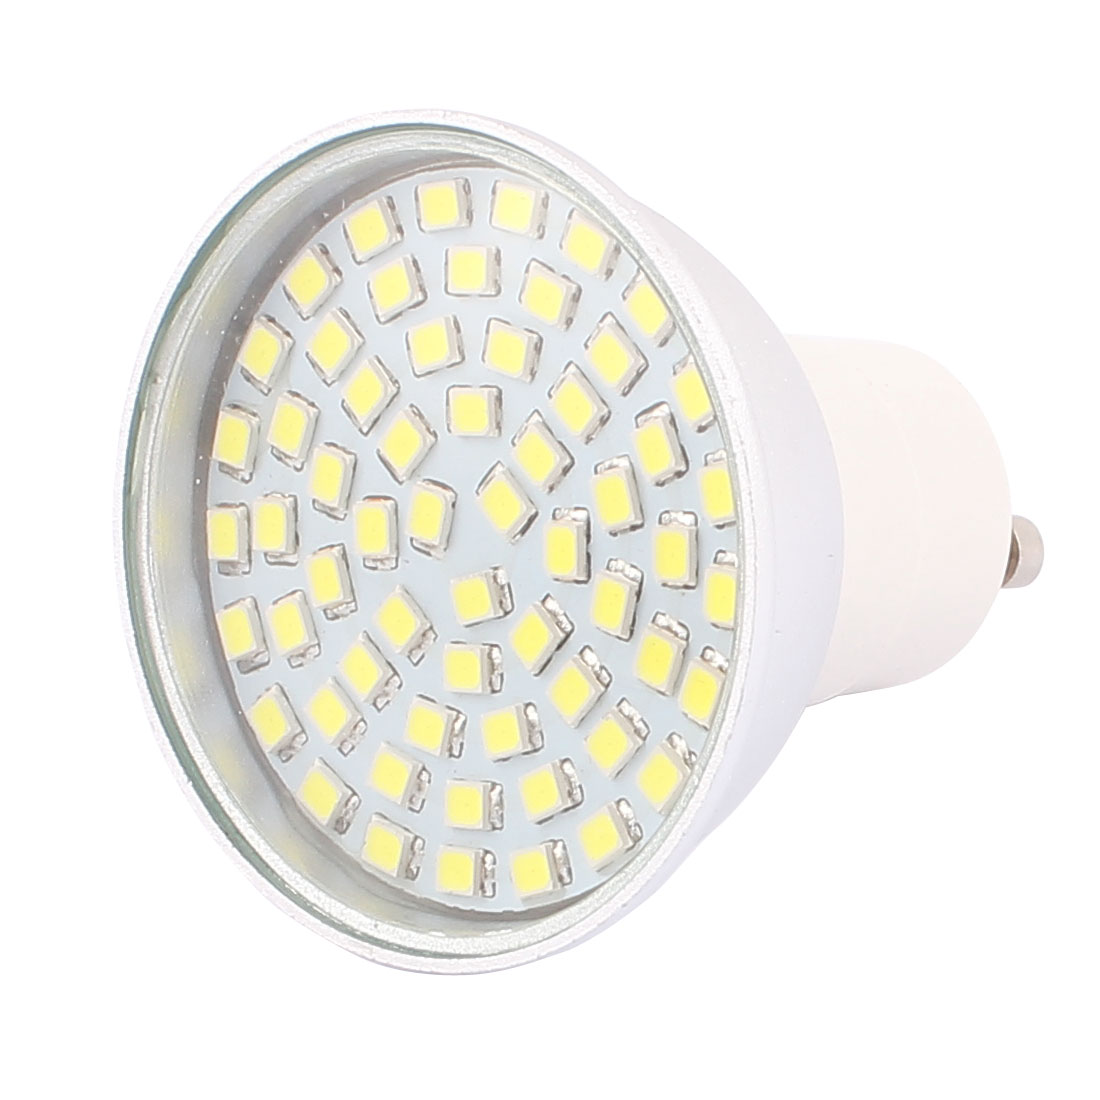 110V GU10  Light 6W 2835 SMD 60 LEDs Spotlight Down Lamp Energy Save White